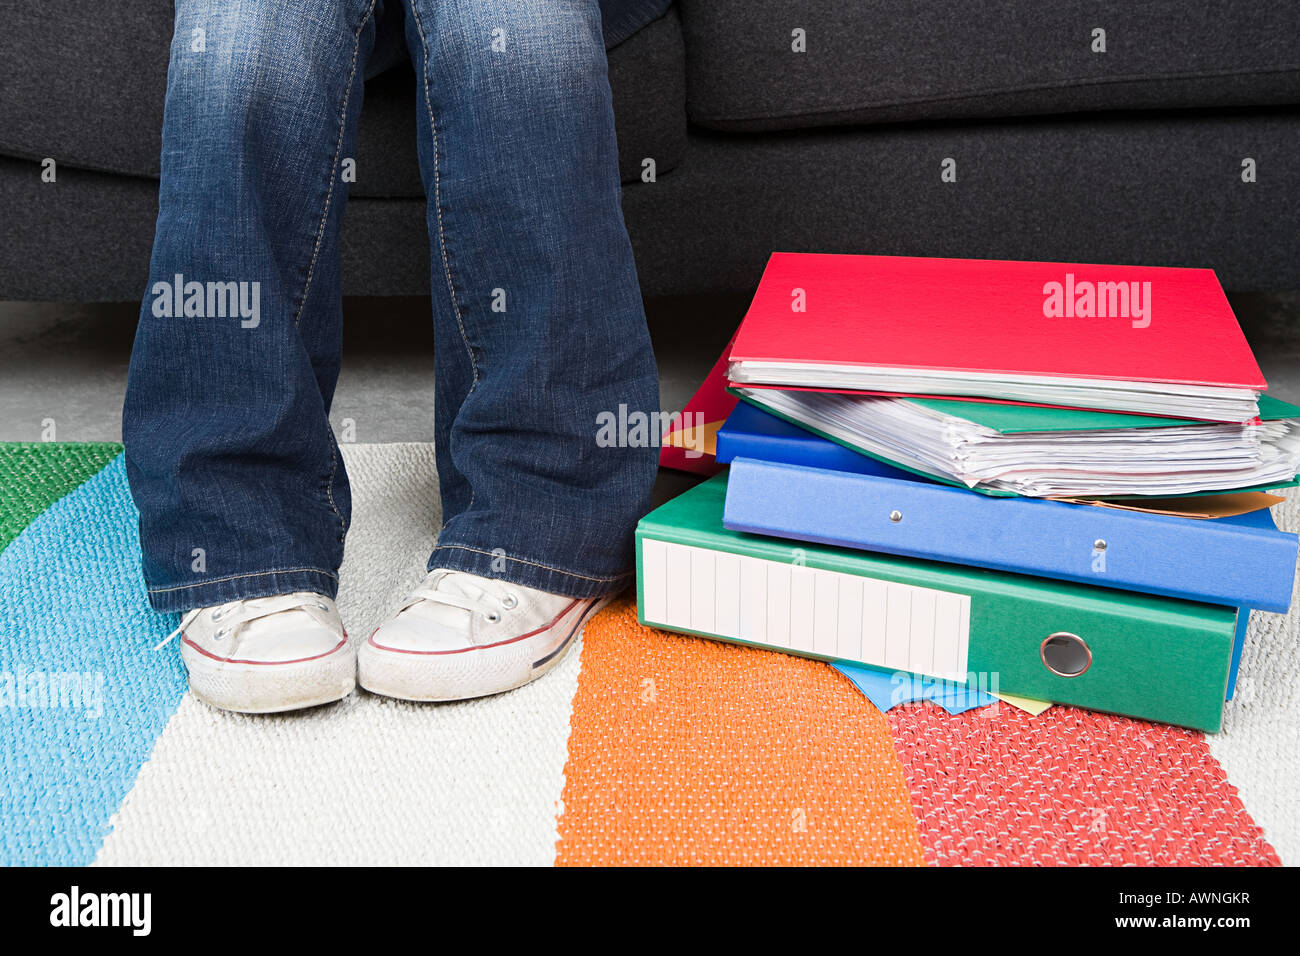 Human legs and ring binders - Stock Image